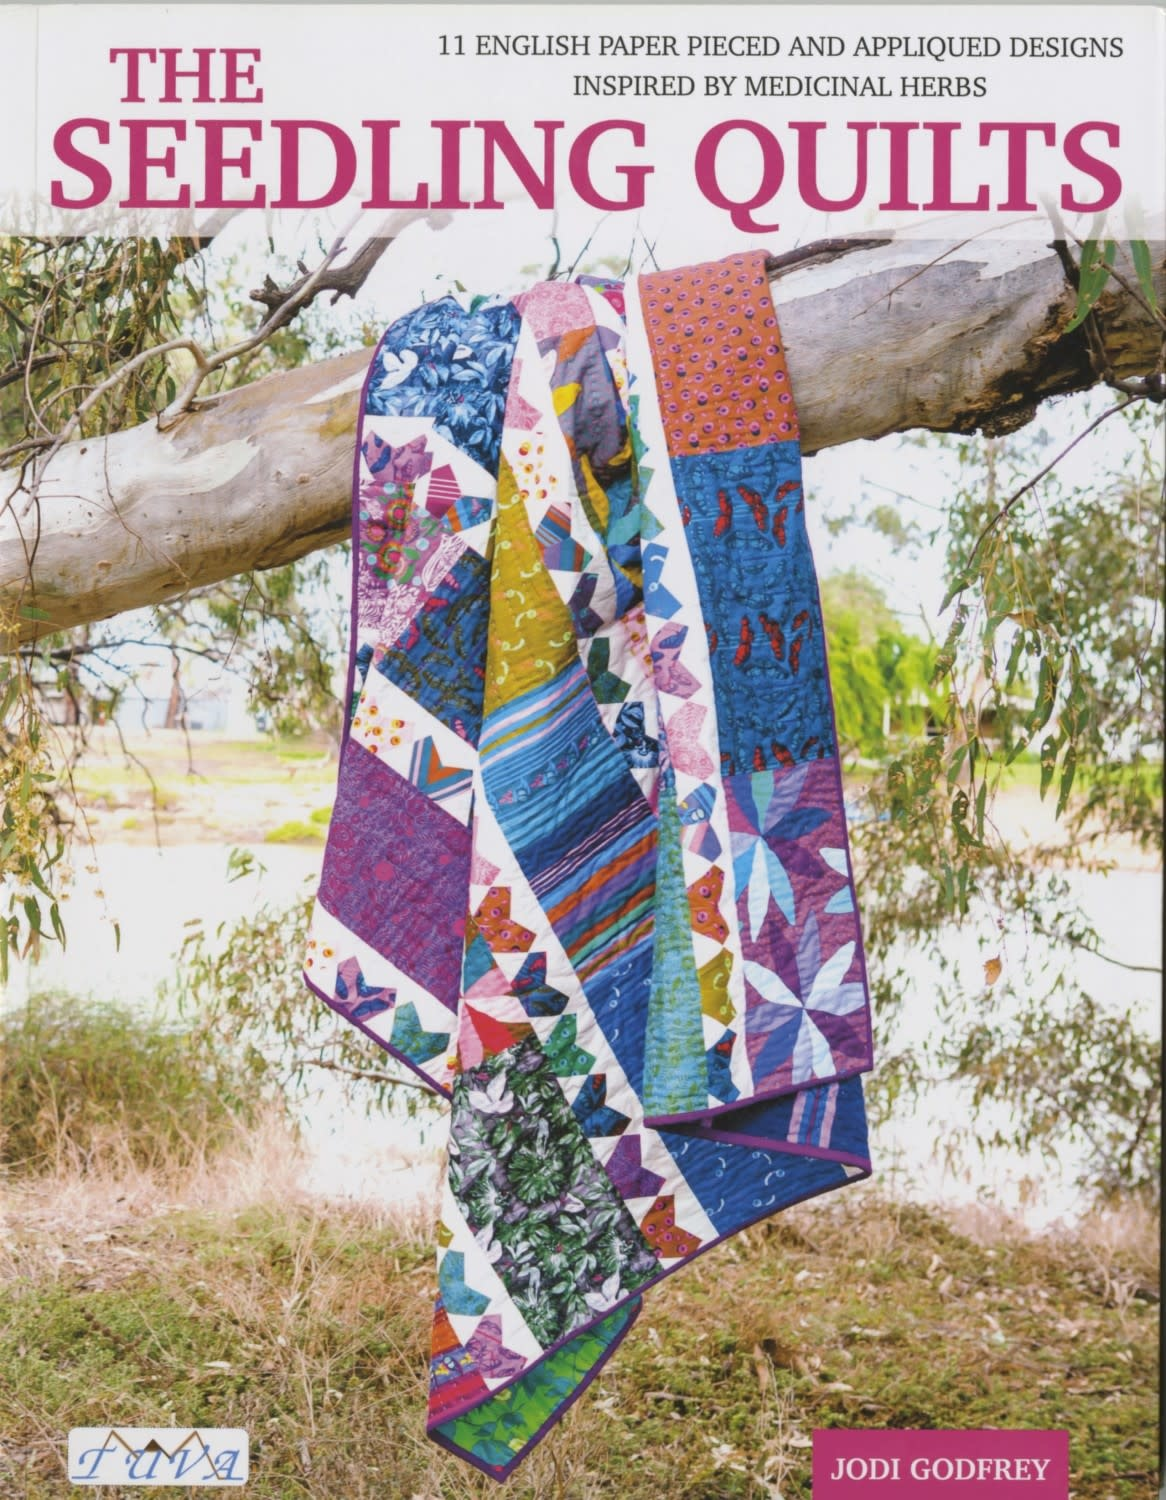 Tuva Publishing The Seedling Quilts